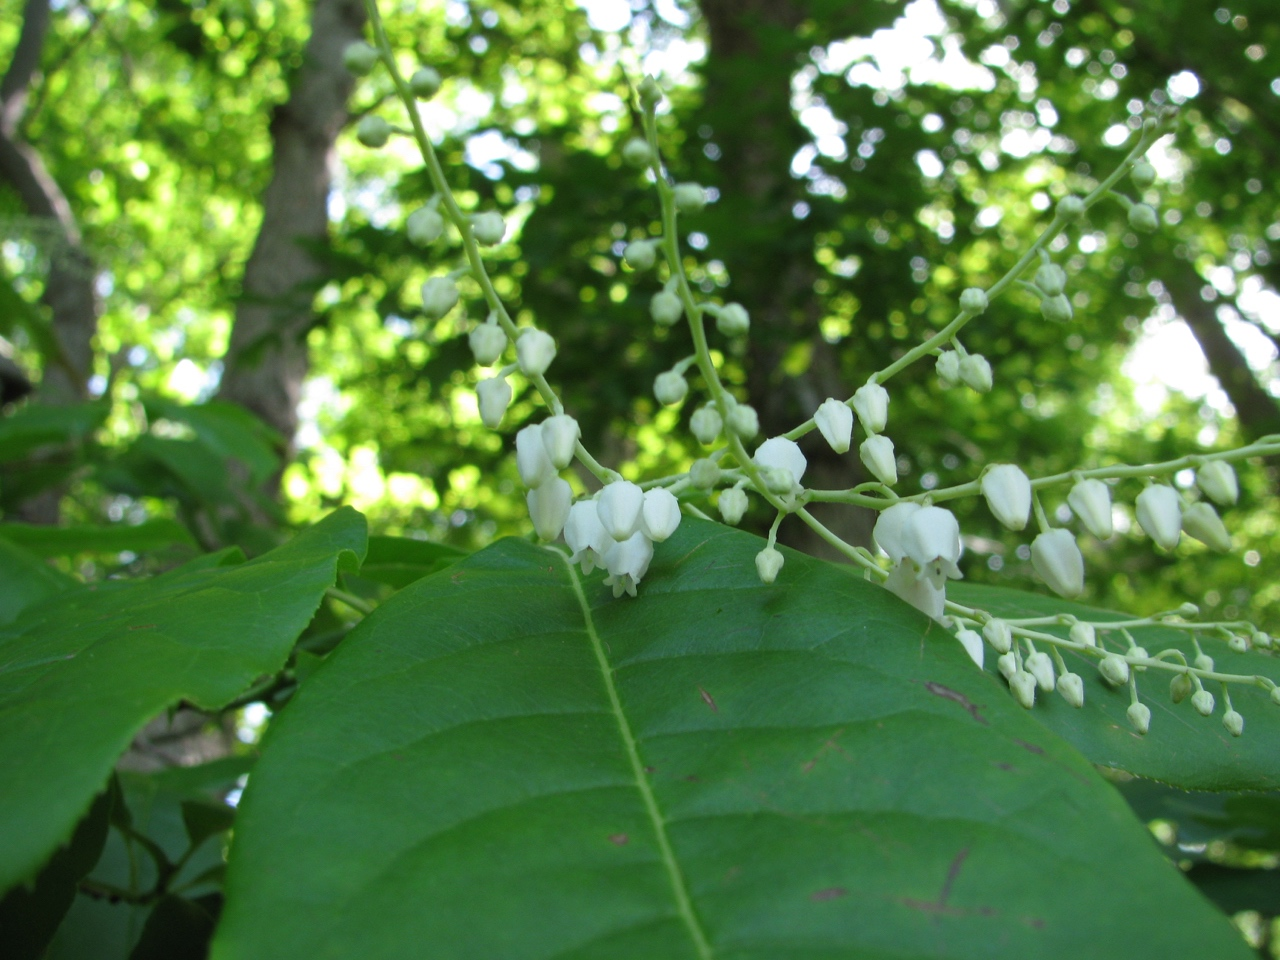 The Scientific Name is Oxydendrum arboreum. You will likely hear them called Sourwood, Sorrel-tree. This picture shows the Close-up of flowers of Oxydendrum arboreum